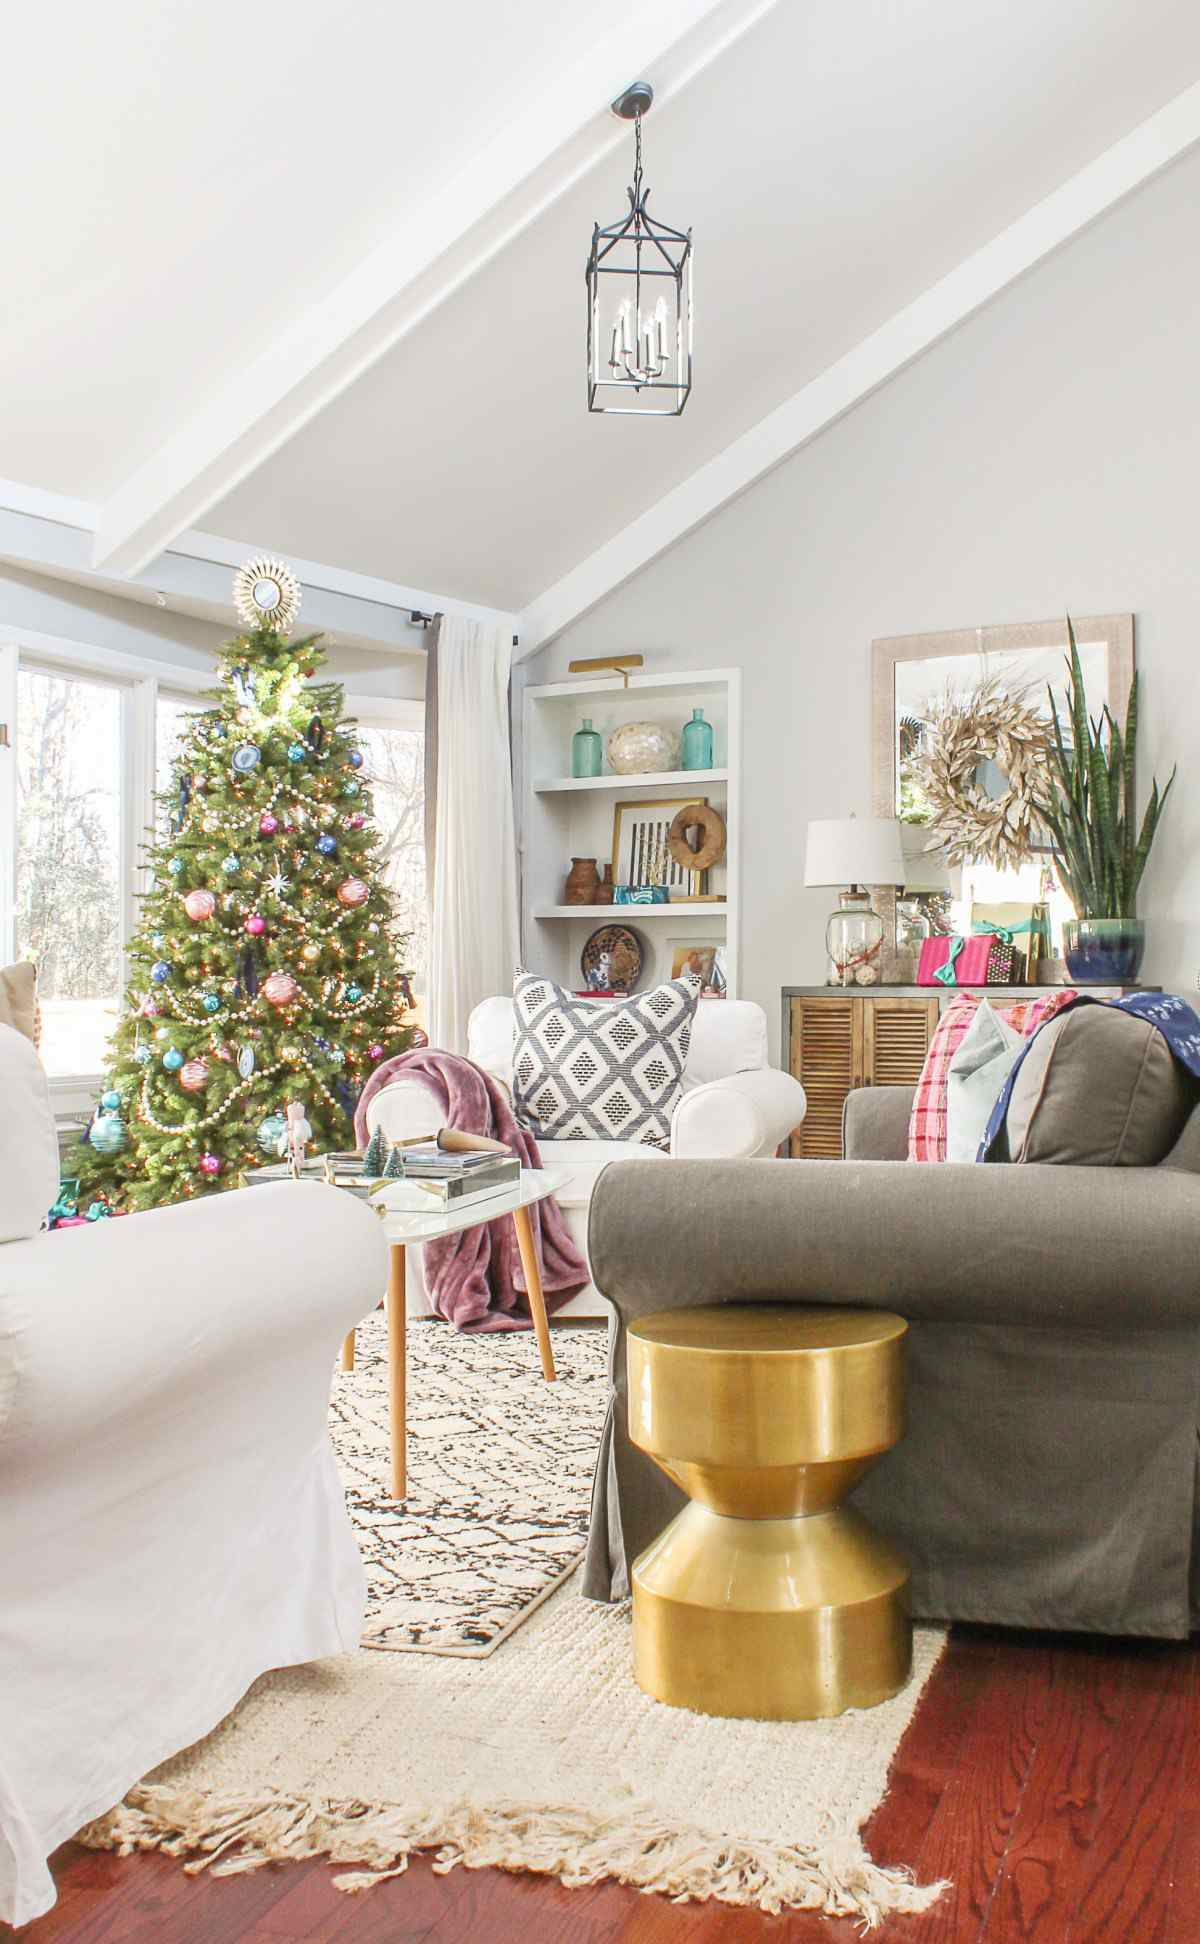 Apartment Christmas Decorations Indoor.21 Beautiful Ways To Decorate The Living Room For Christmas